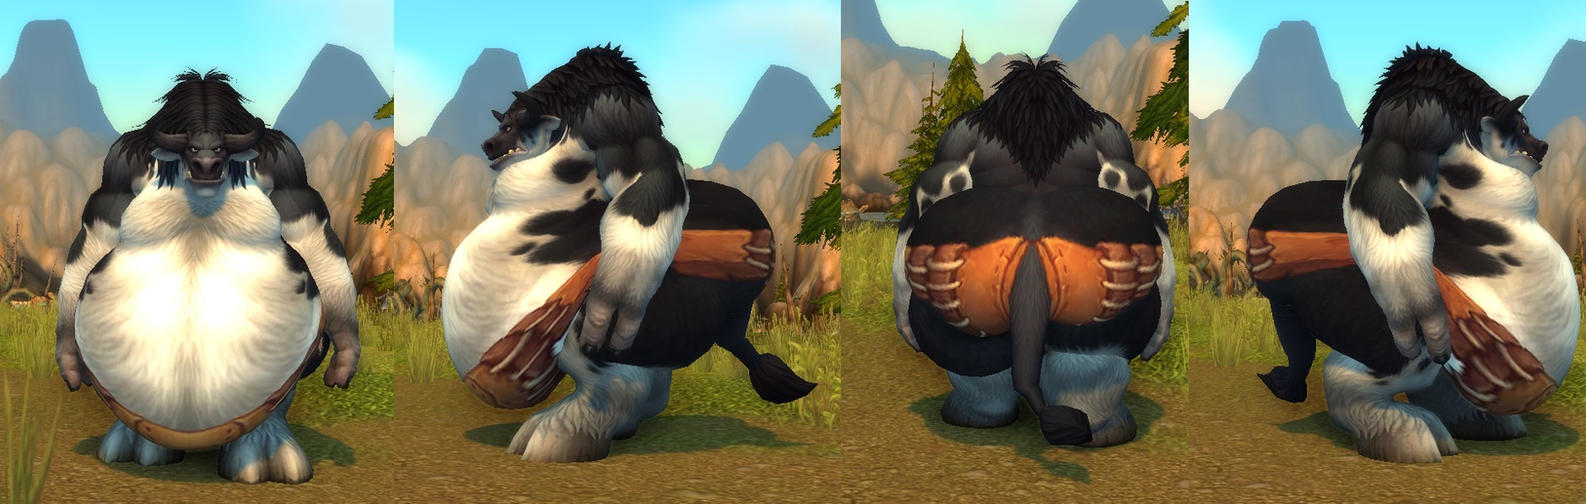 Tauren fat male by coldsteelj